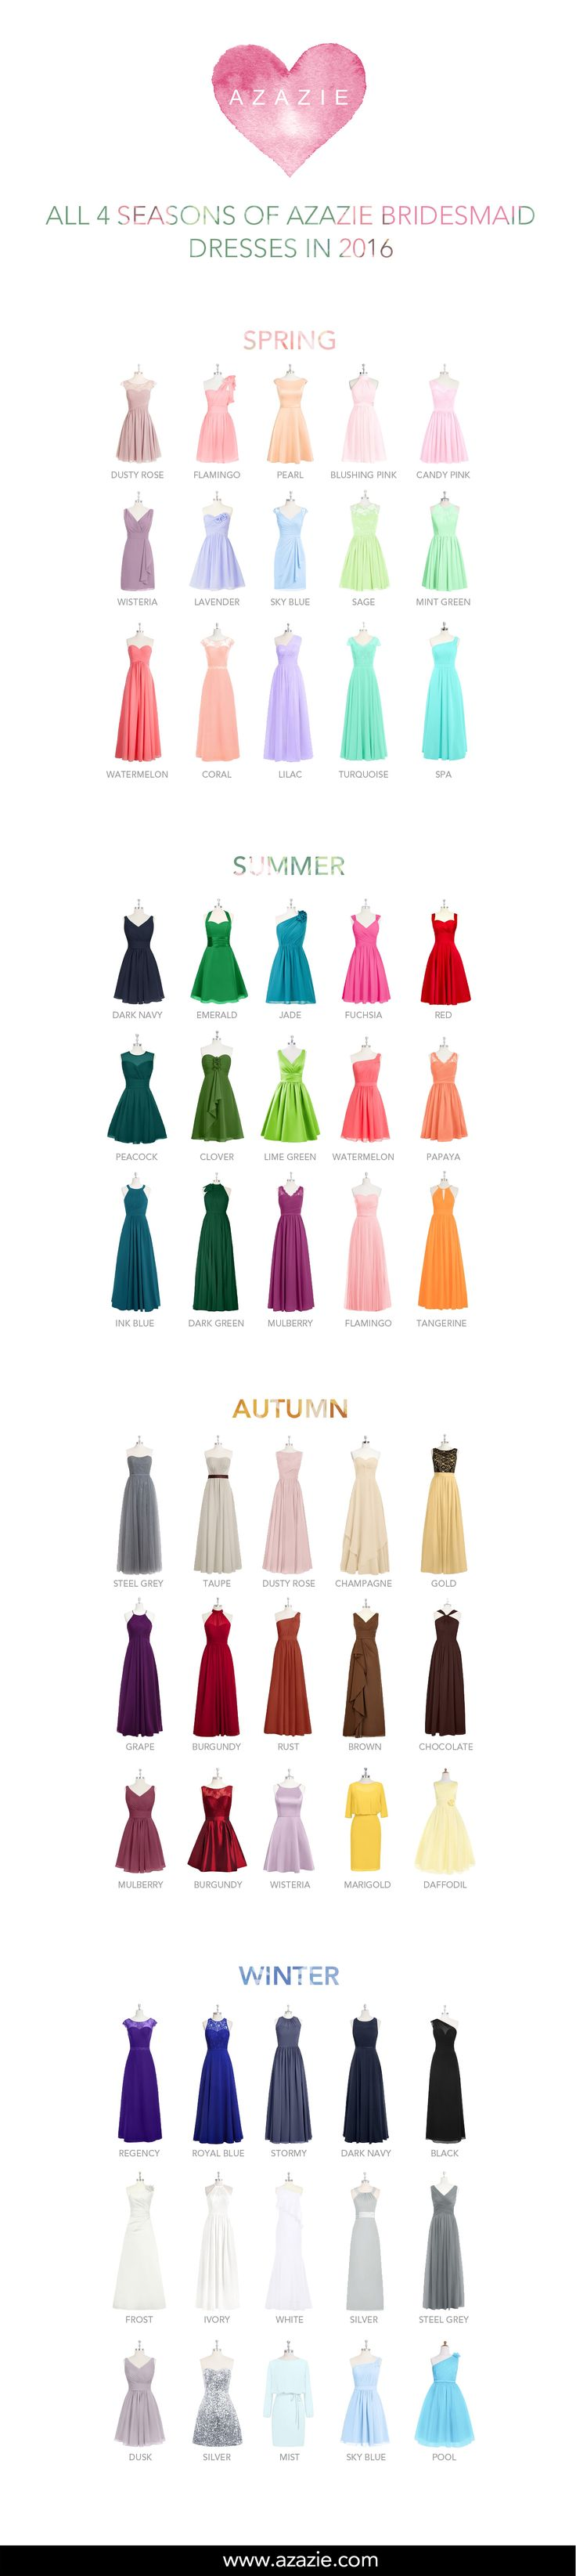 Color q online - Azazie Is The Online Destination For Special Occasion Dresses Our Online Boutique Connects Bridesmaids And